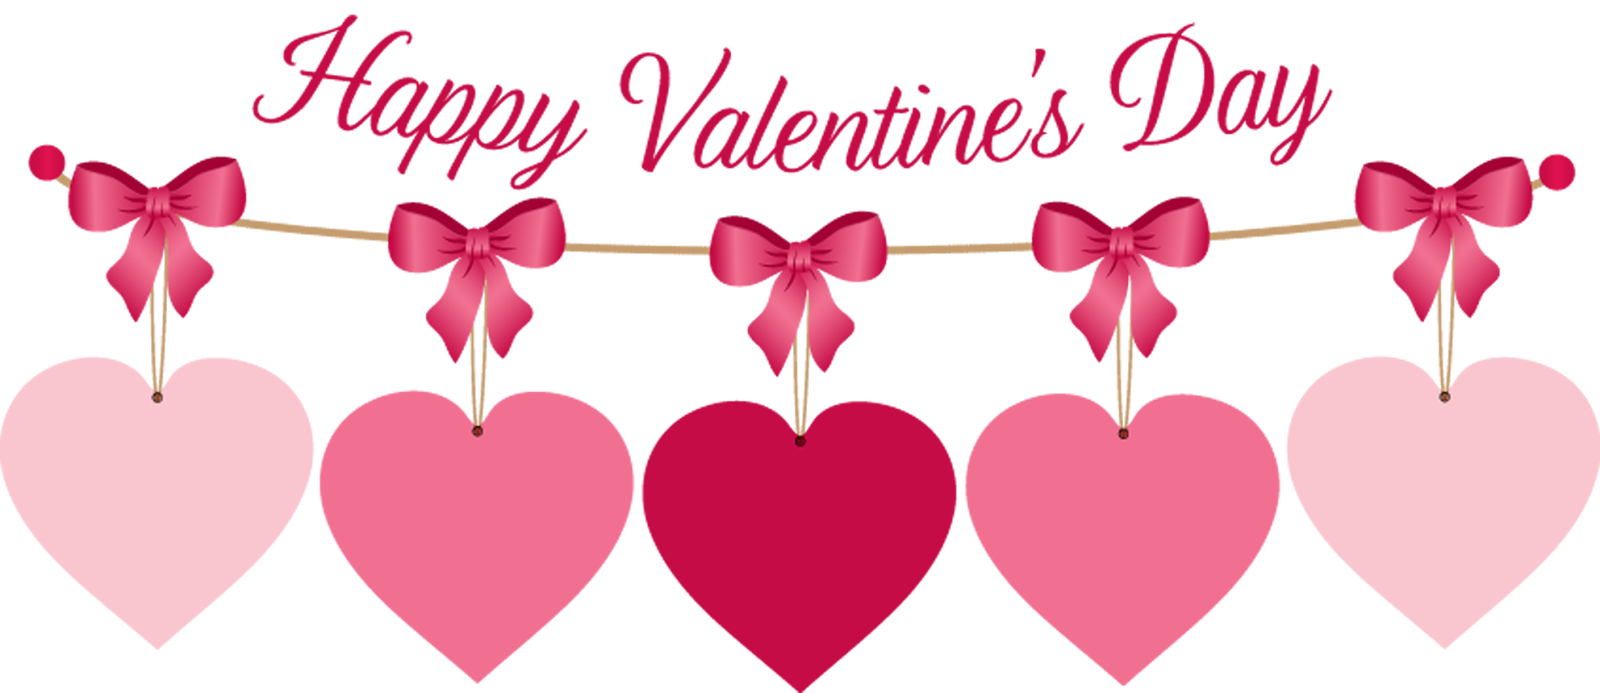 Images Quotes Wallpaper Wishes Valentines Day Clipart Happy Valentines Day Happy Valentines Day Clipart